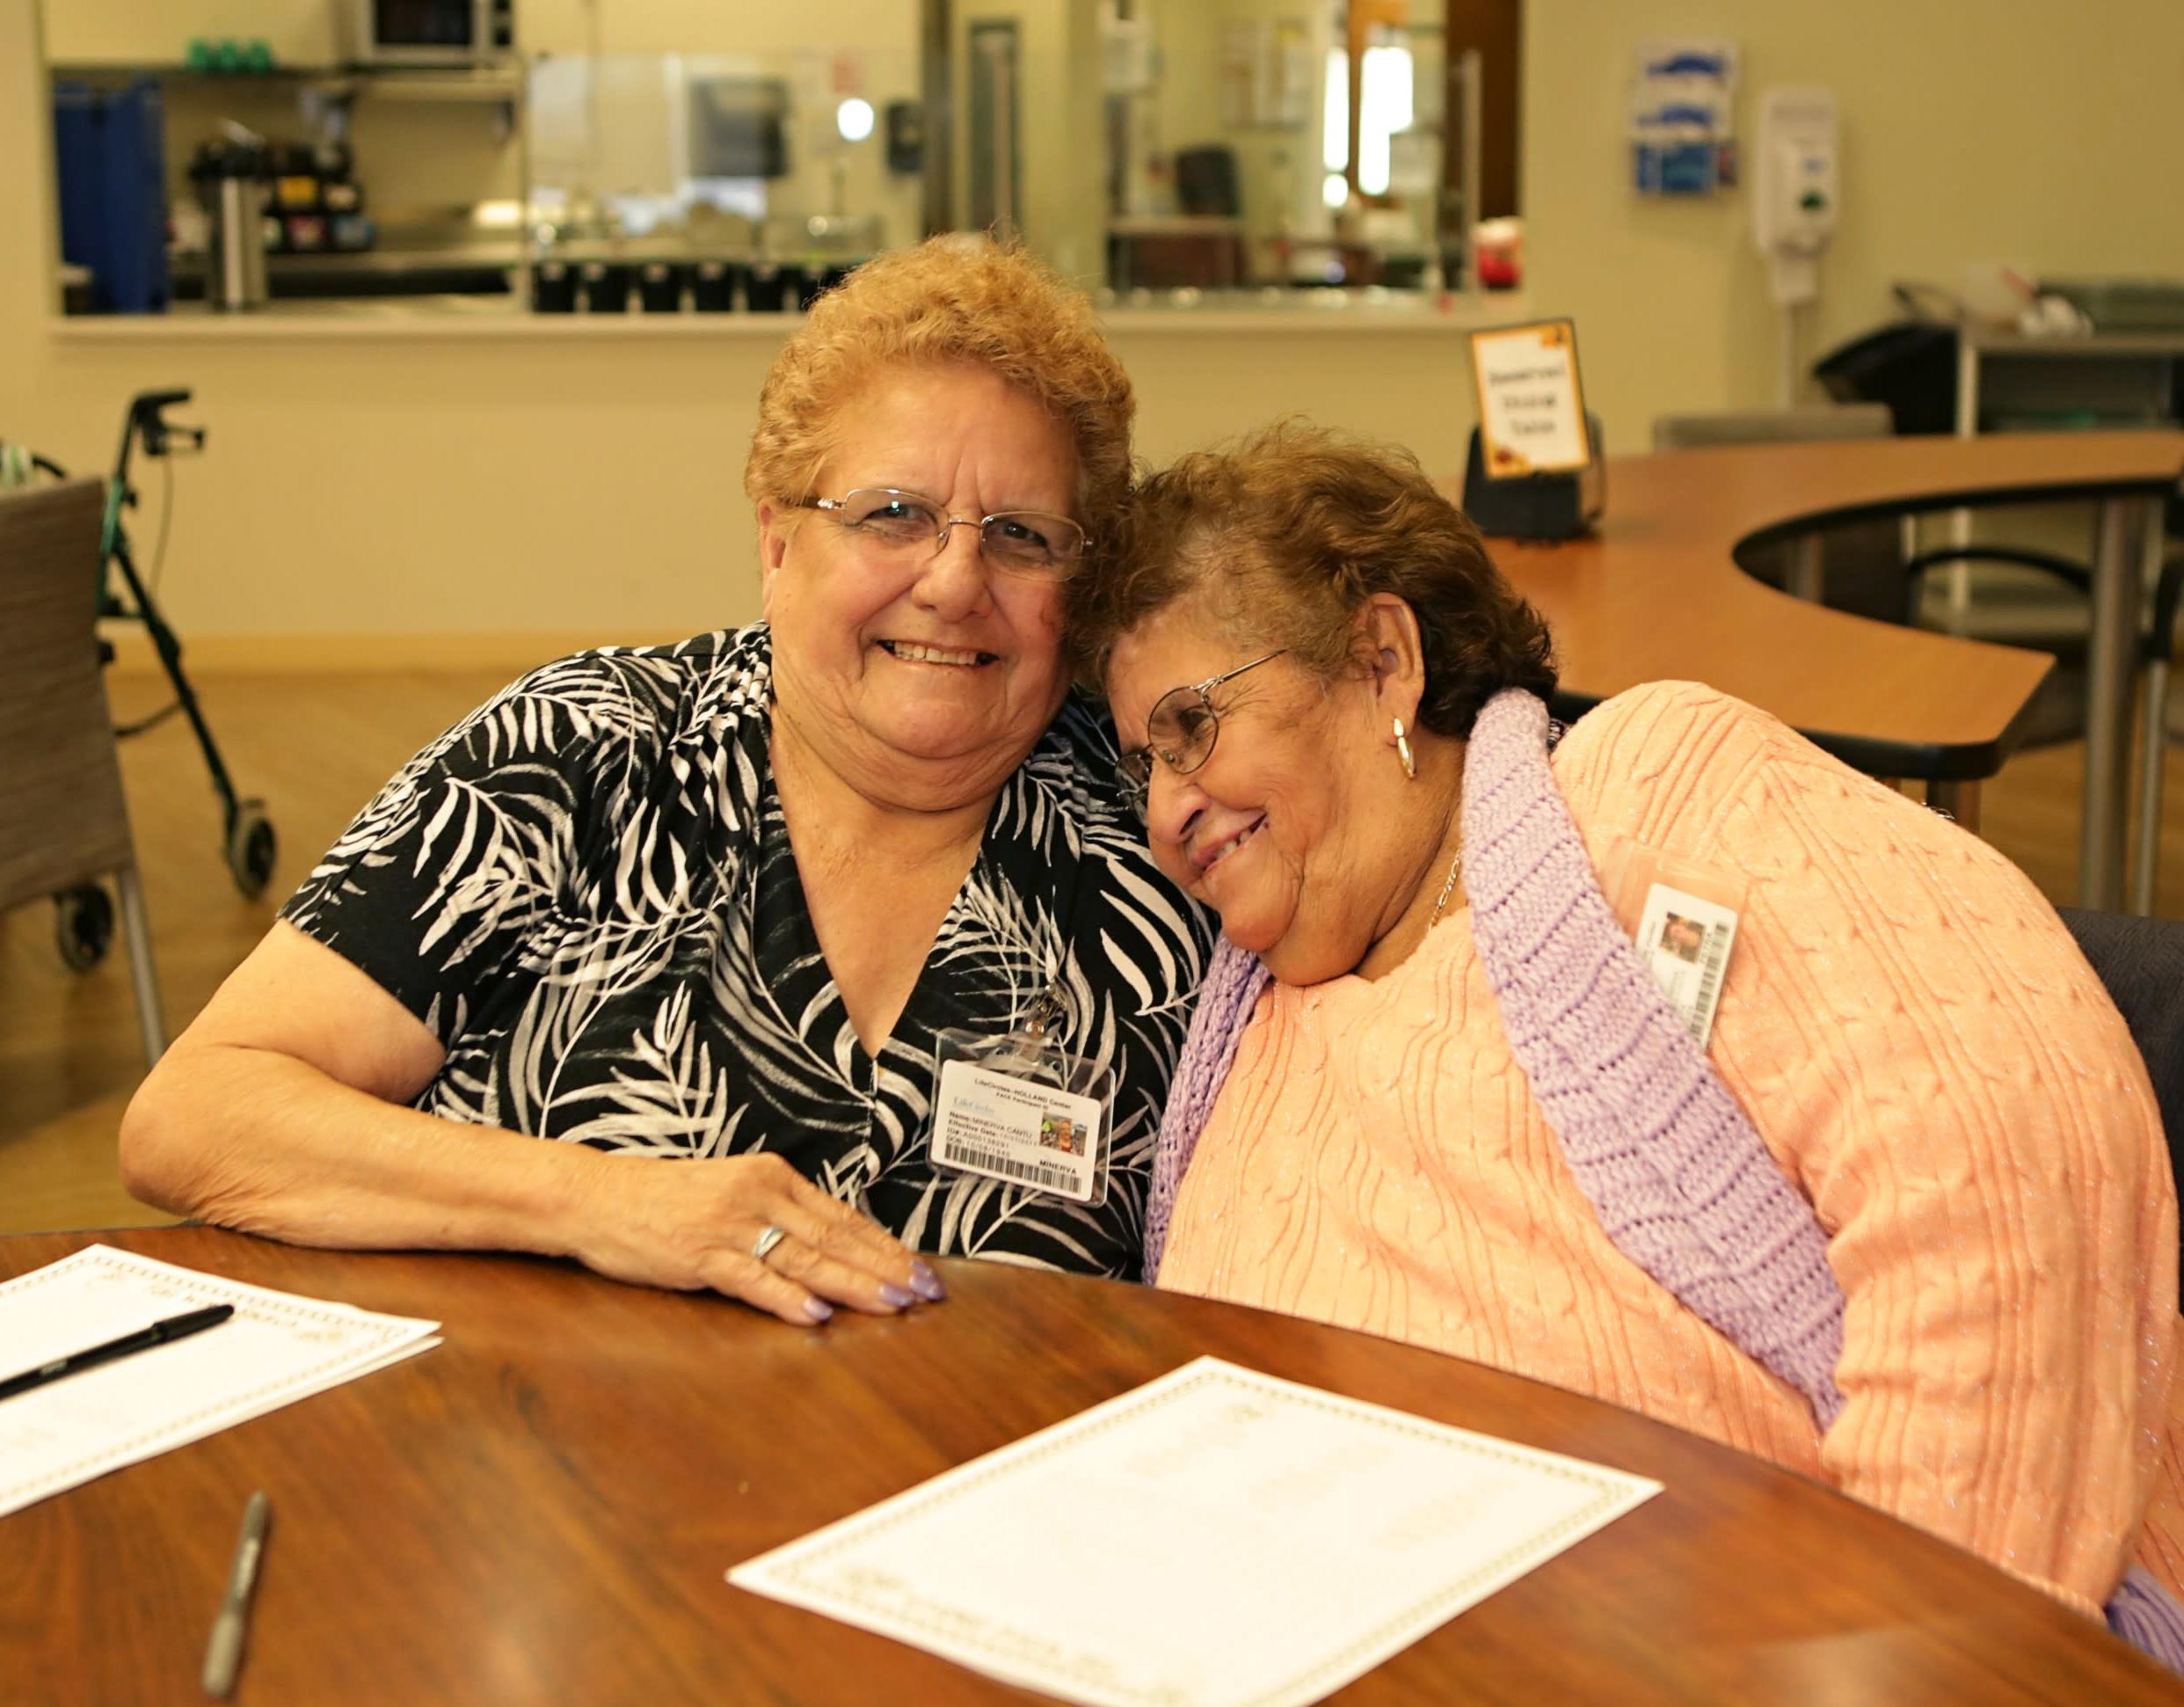 Seniors who participate in LifeCircles PACE program share a moment of fun at the senior day center.